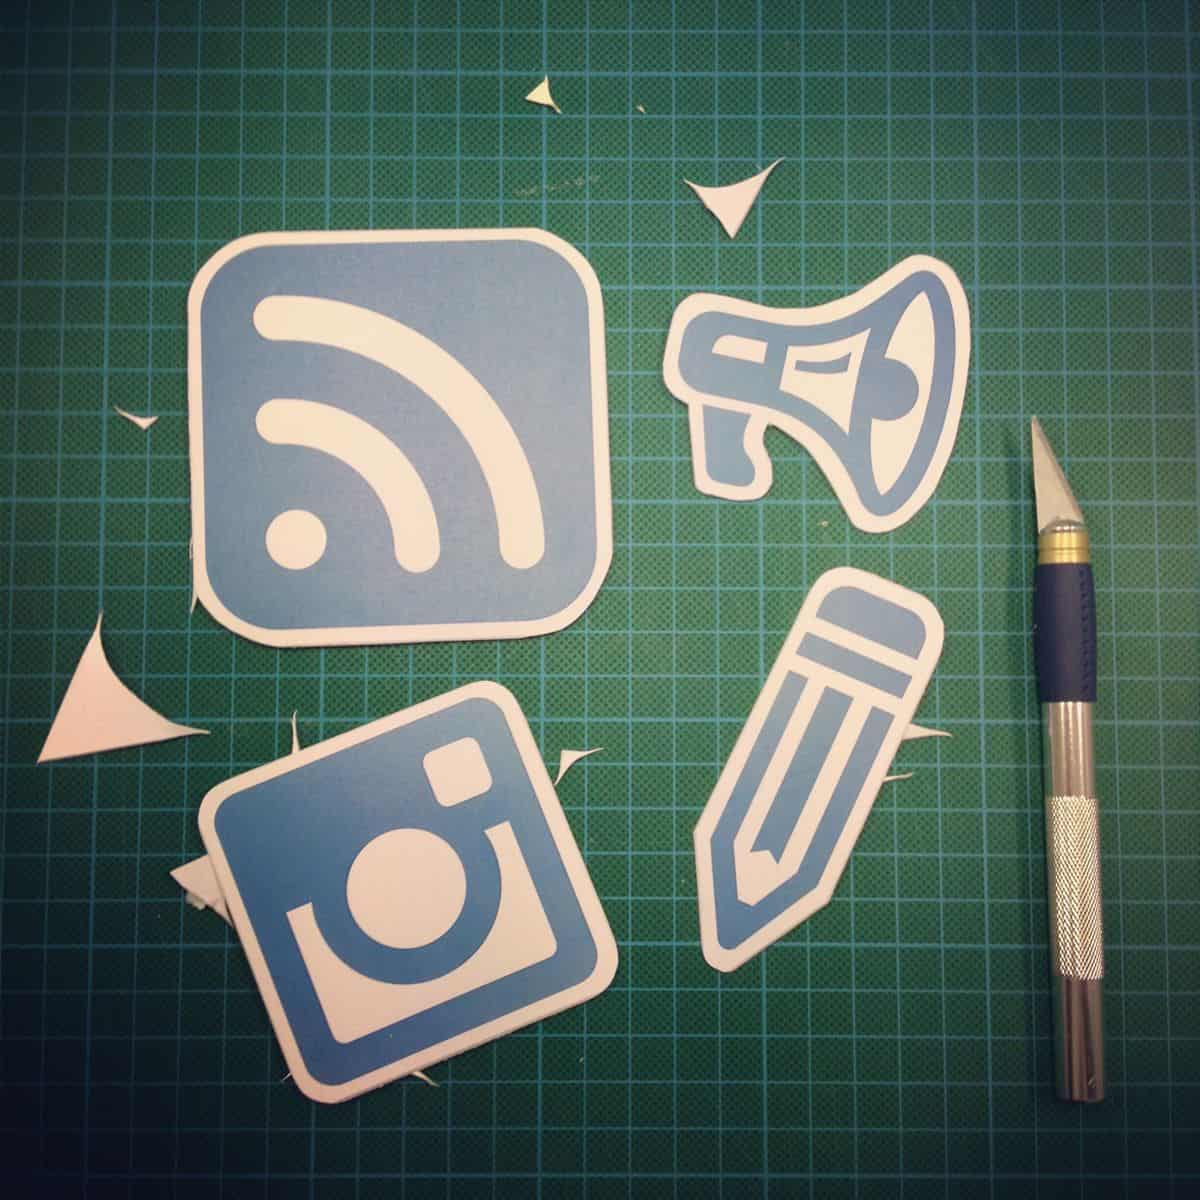 Paper cut-outs of simple flat design icons, all in the same shade of steel blue.